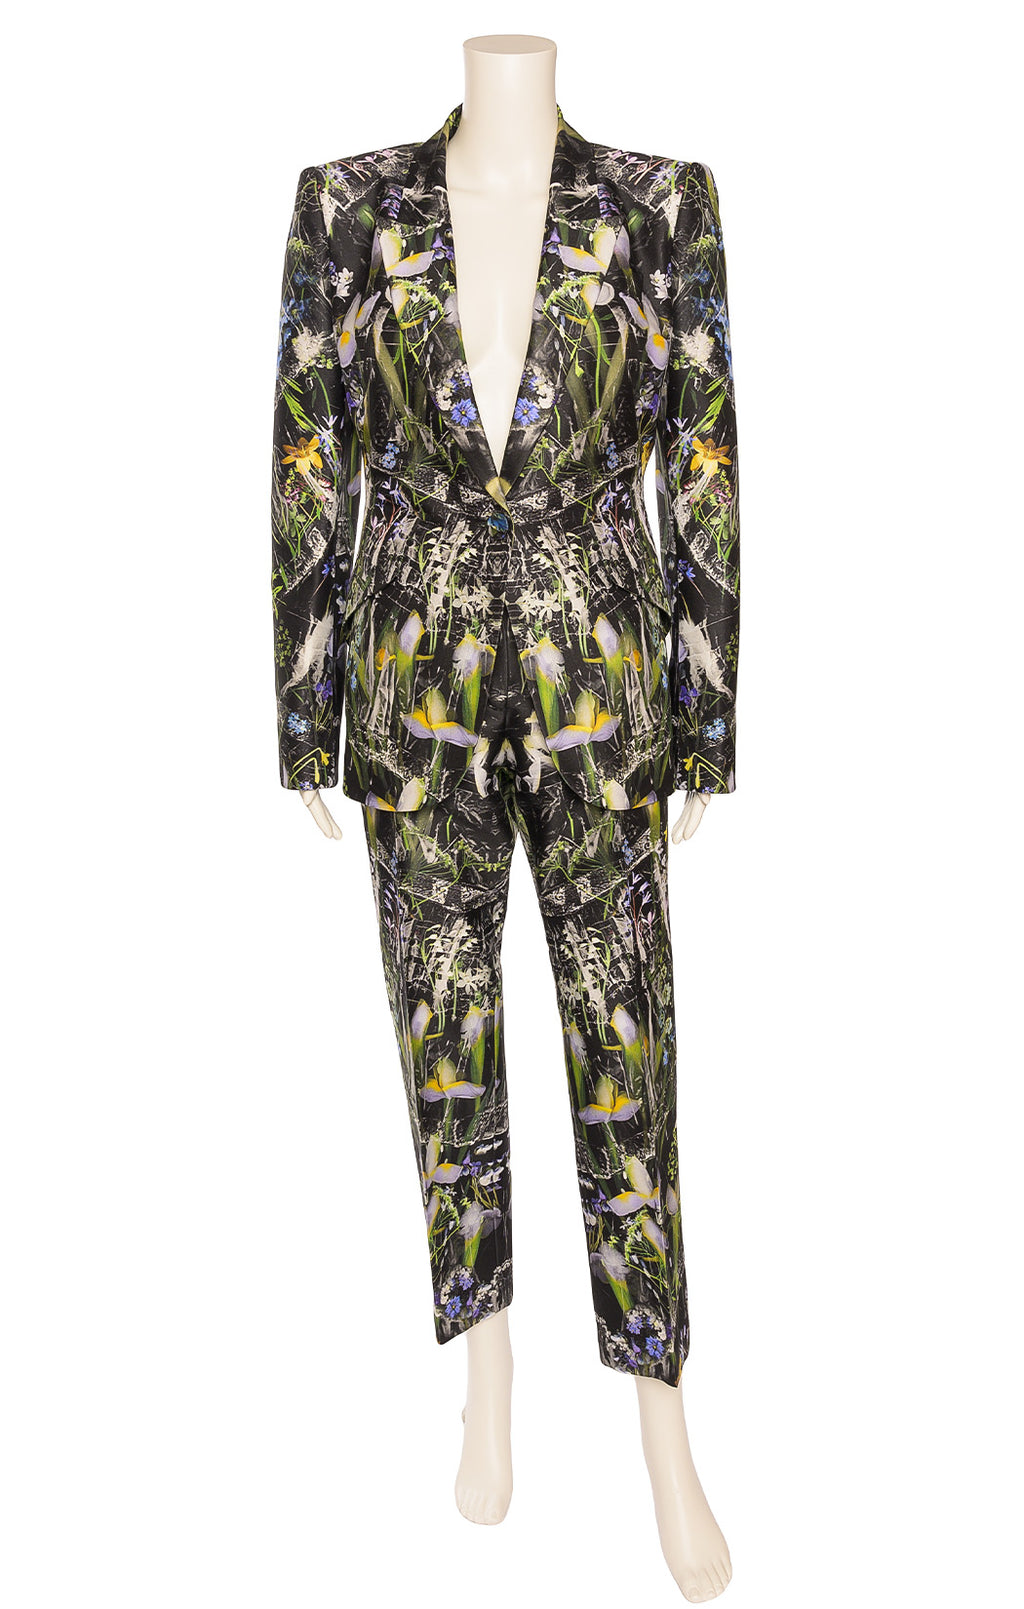 Front view of ALEXANDER MCQUEEN  Pants suit Size: IT 46 (comparable to US 10)